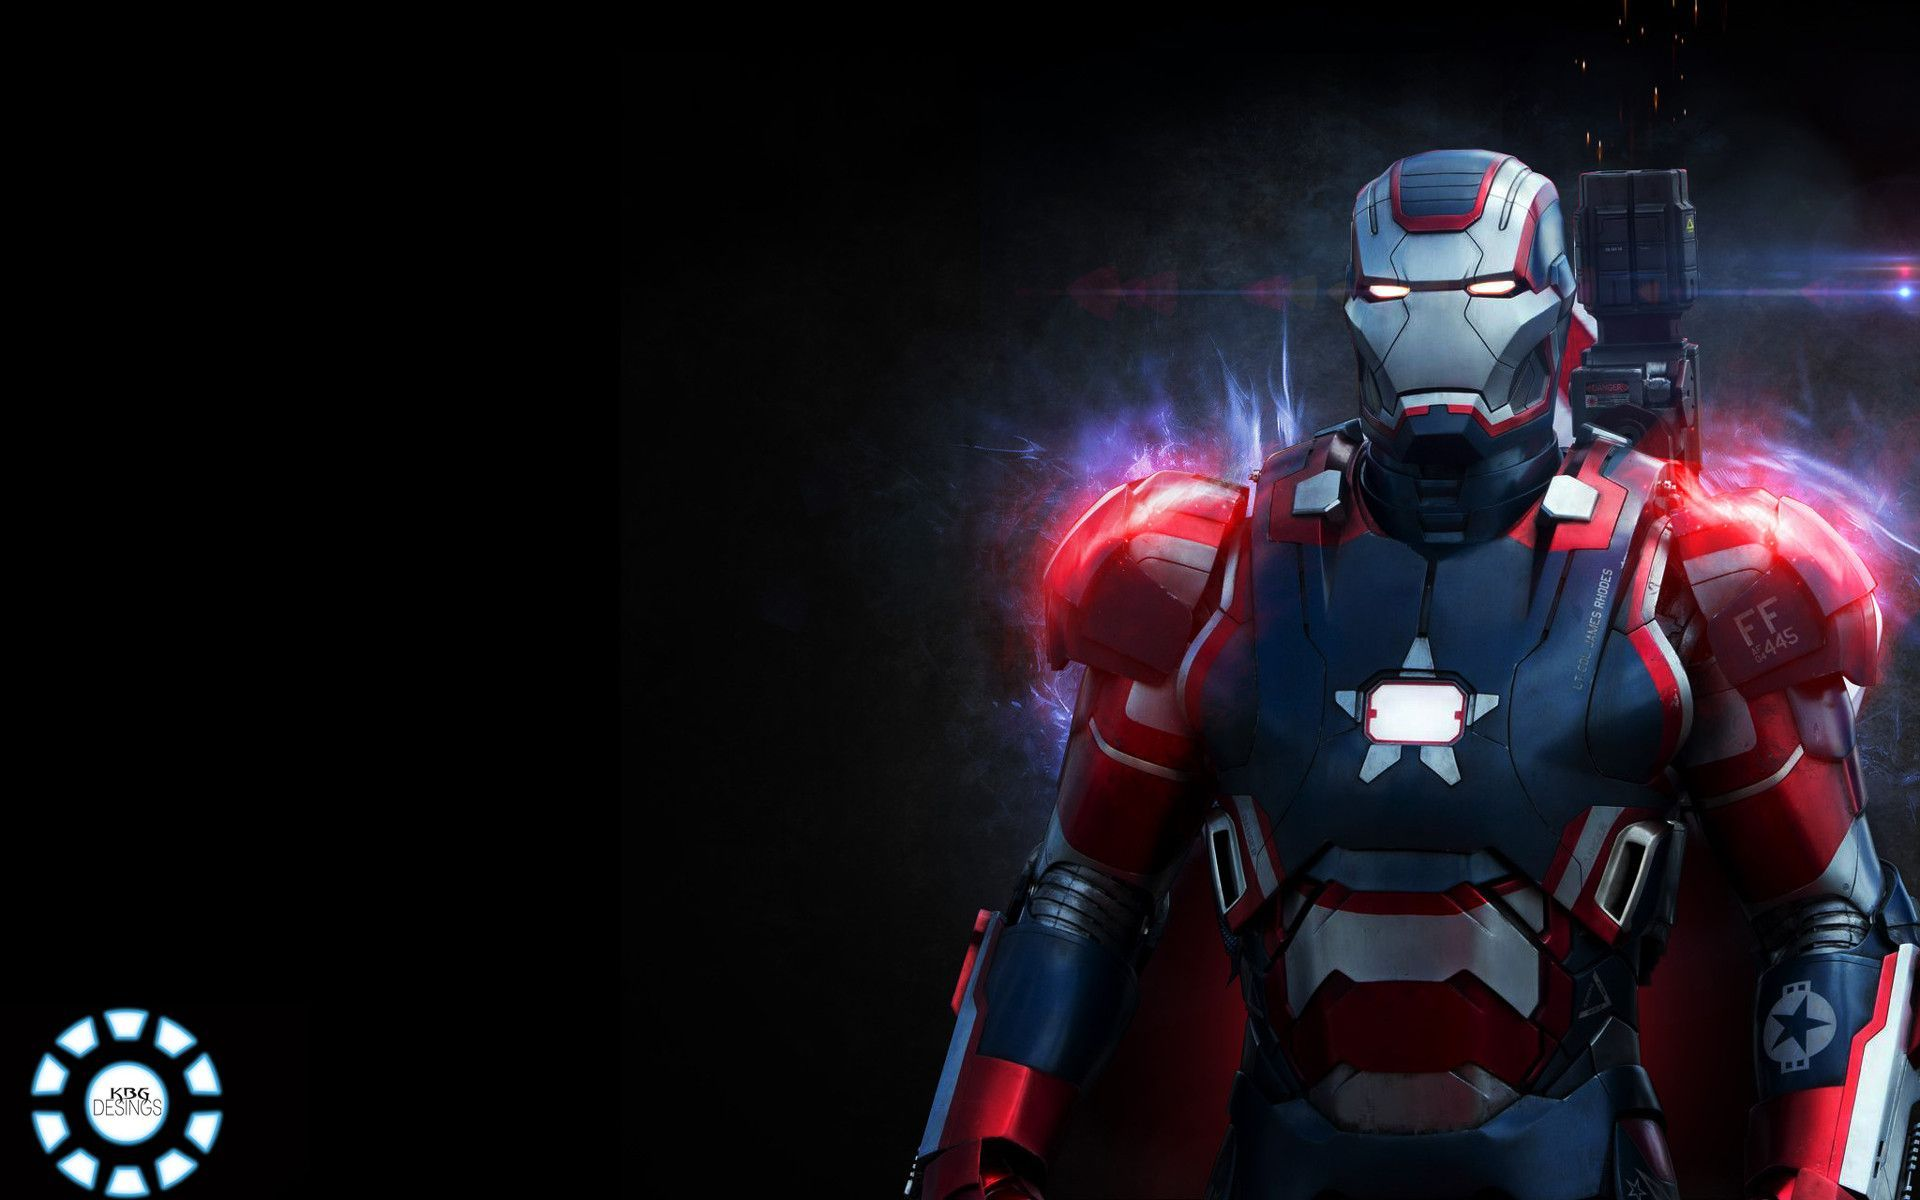 Download Iron Man 3 HD Wallpapers 1080p Gallery